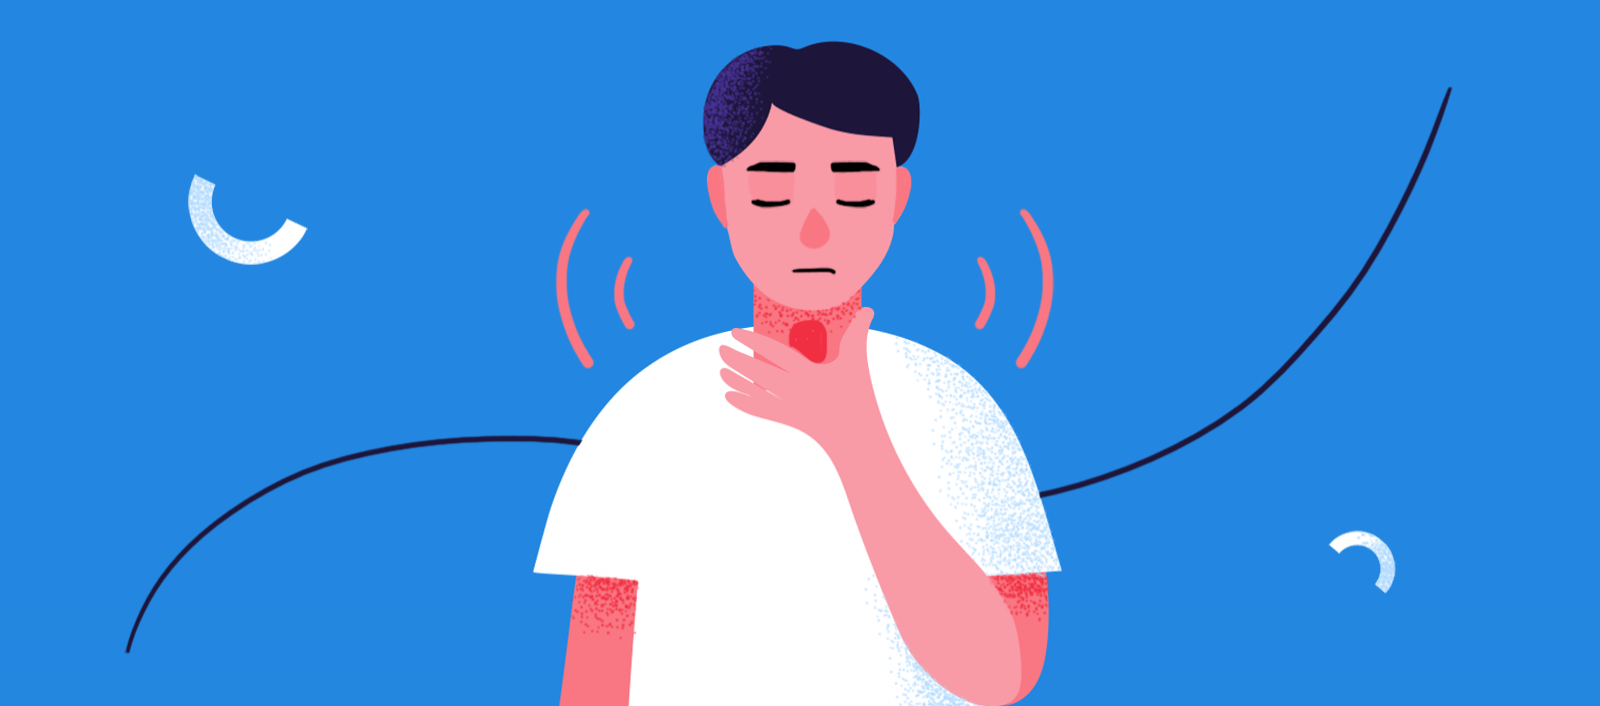 How Anxiety Causes Trouble Swallowing